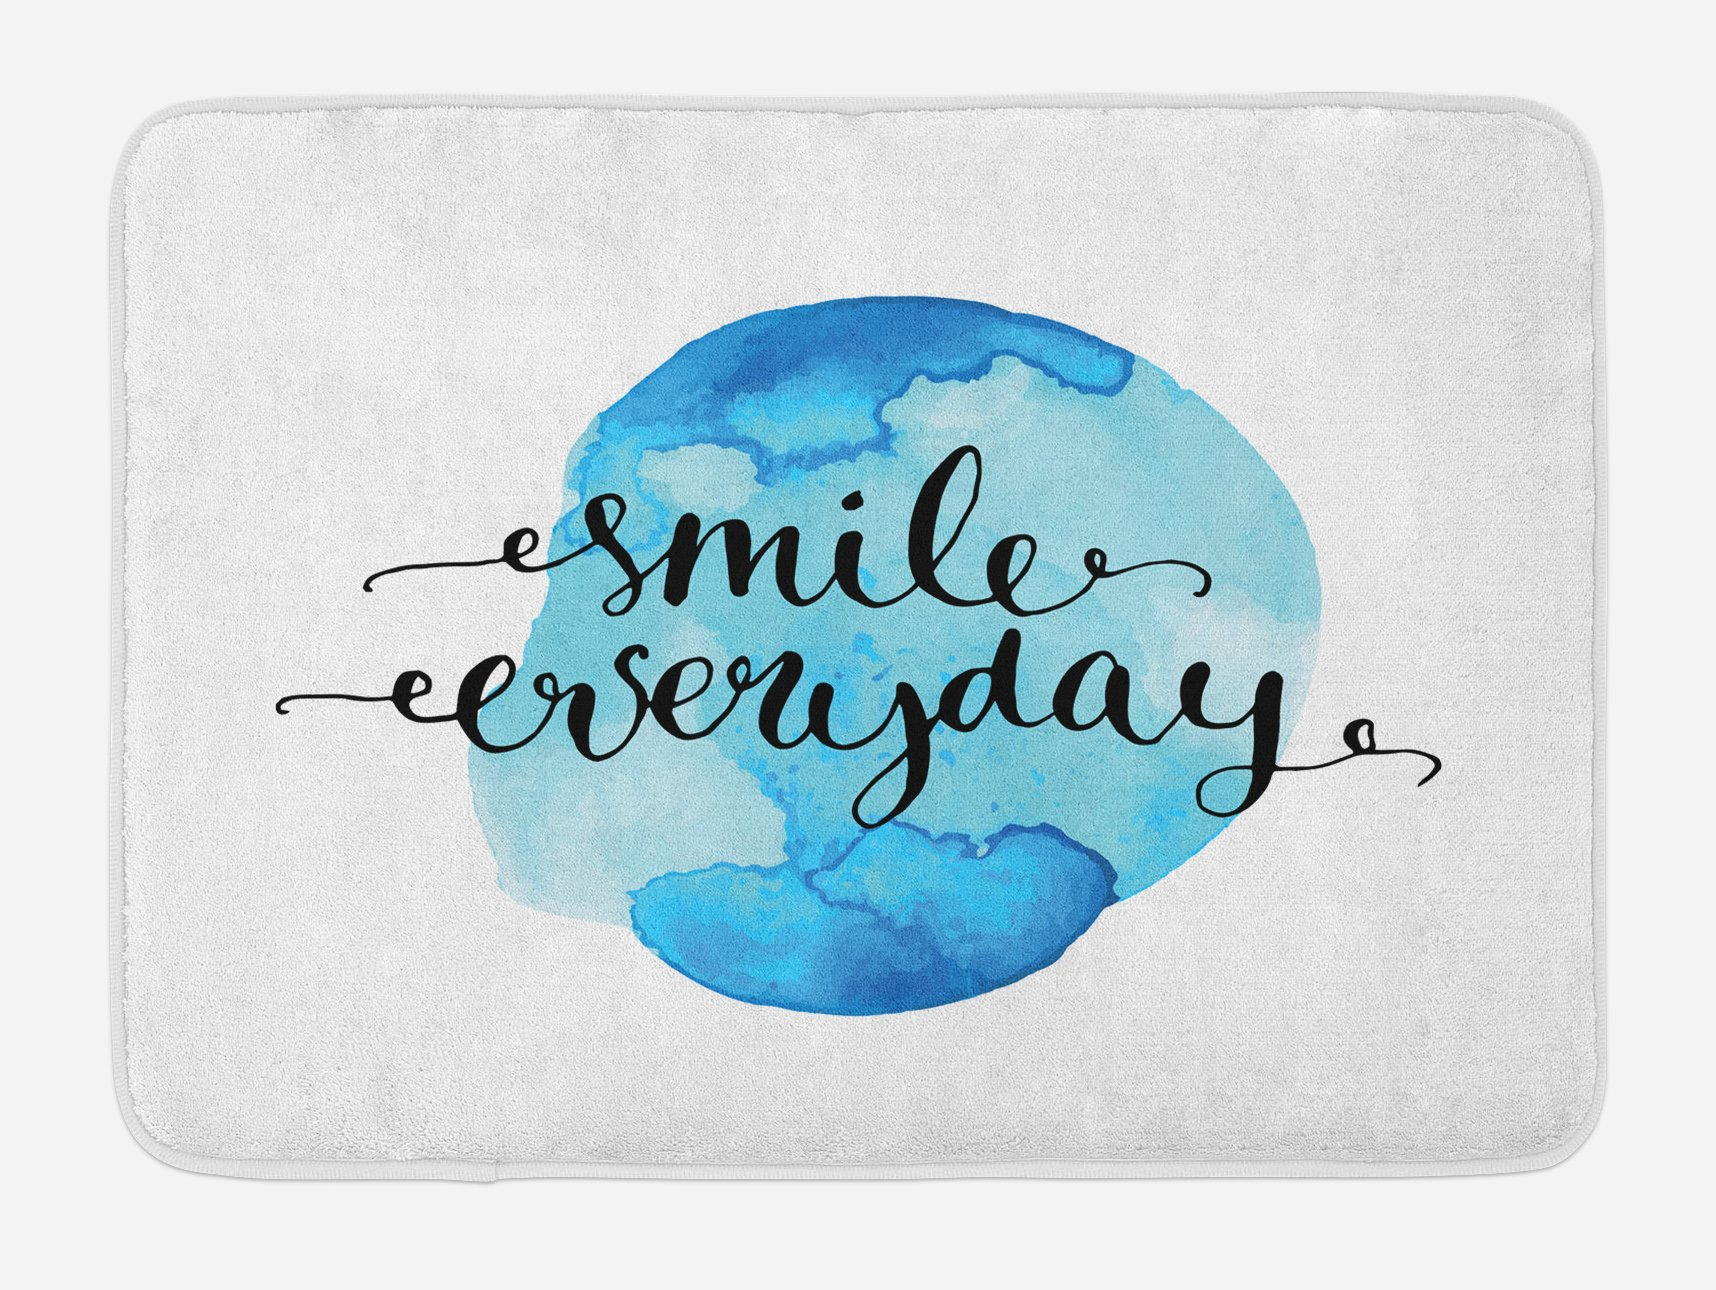 Lunarable Quote Bath Mat, Inspirational Smile Everyday Lettering with Watercolor Paint Stain Backdrop, Plush Bathroom Decor Mat with Non Slip Backing, 29.5 W X 17.5 W Inches, Blue Pale Blue Black